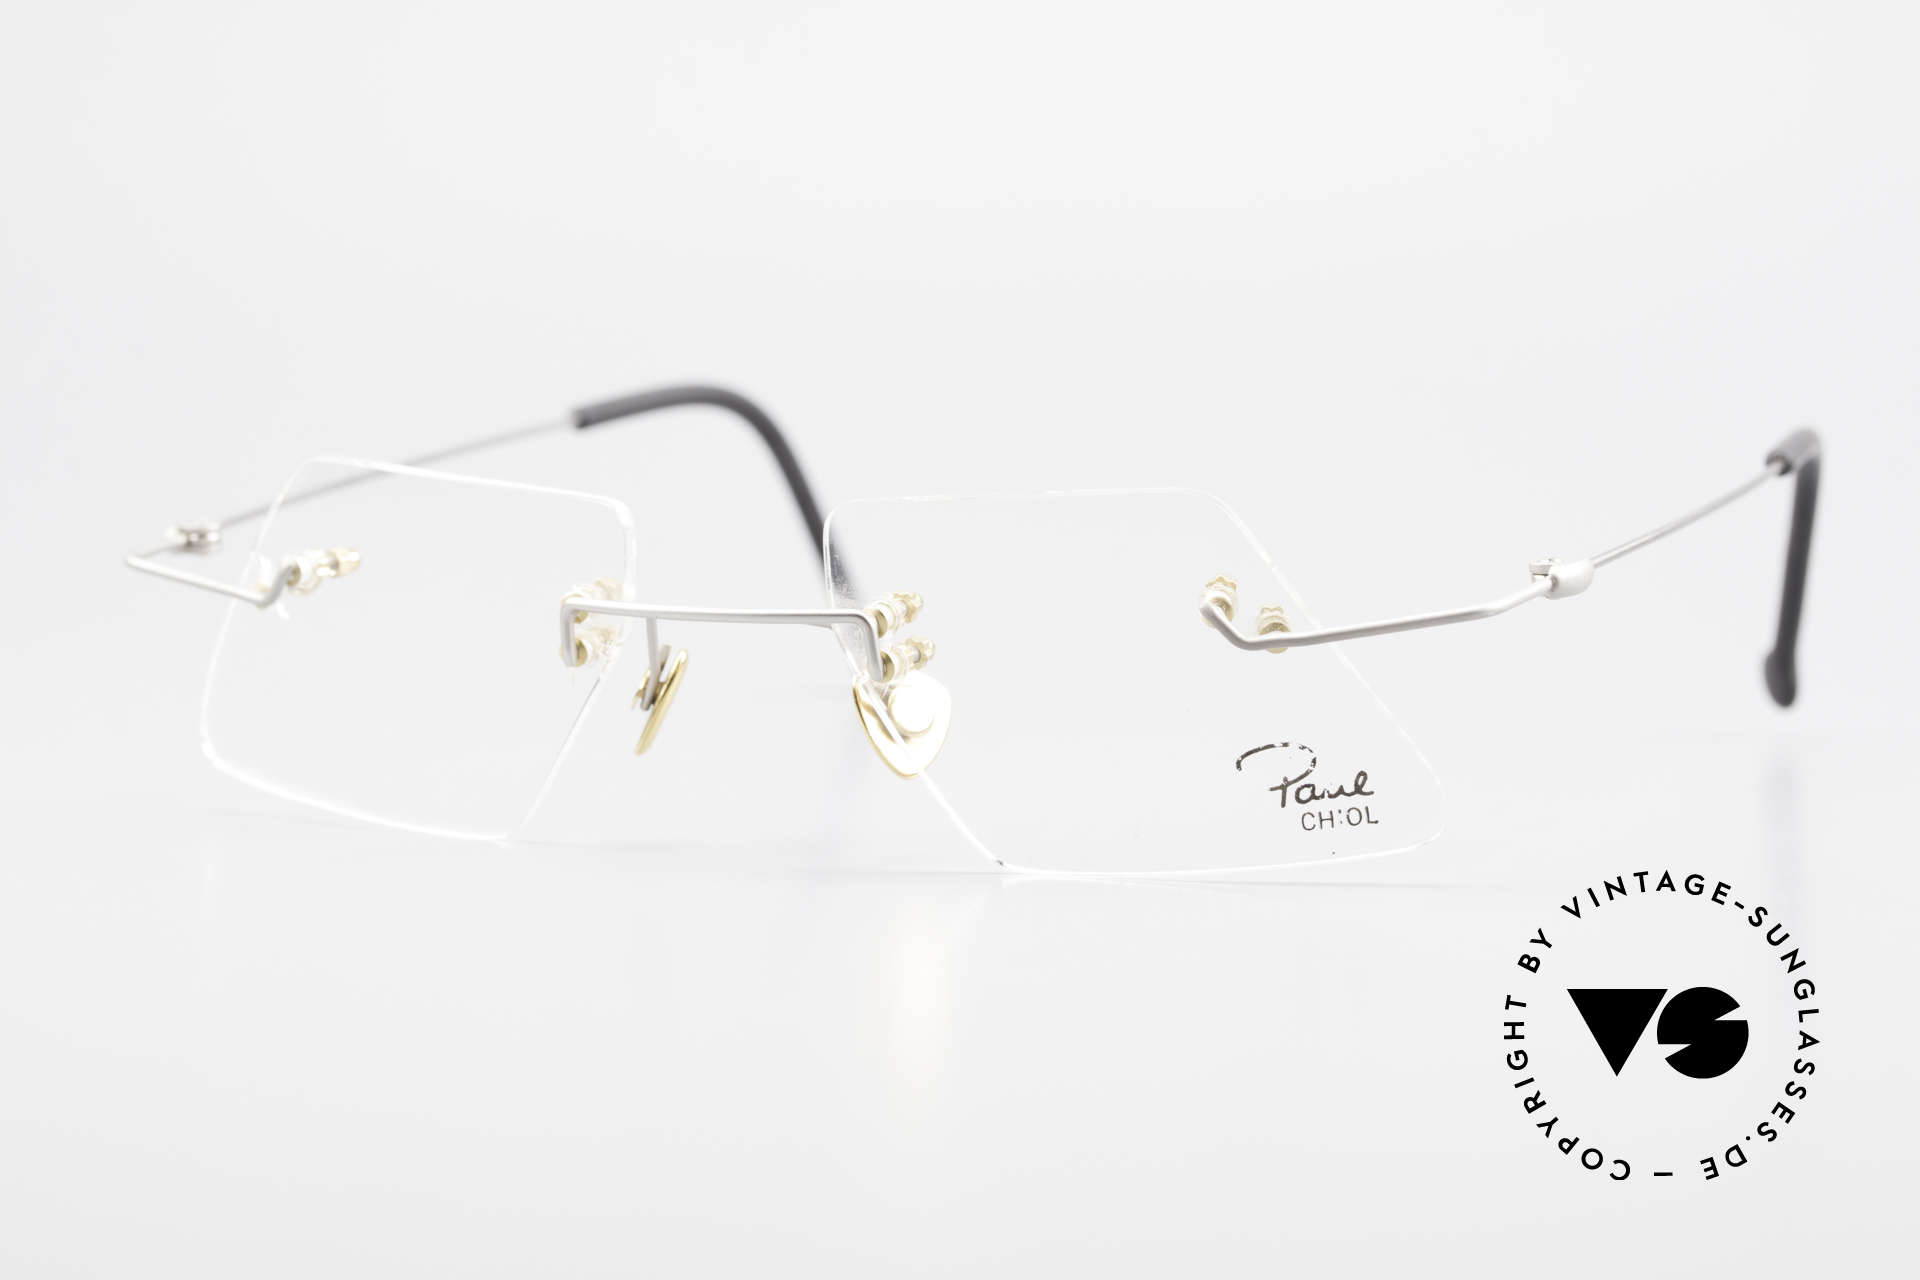 Paul Chiol 2001 Unique Rimless Eyeglasses, vintage 90's Paul Chiol designer eyeglass-frame, Made for Men and Women